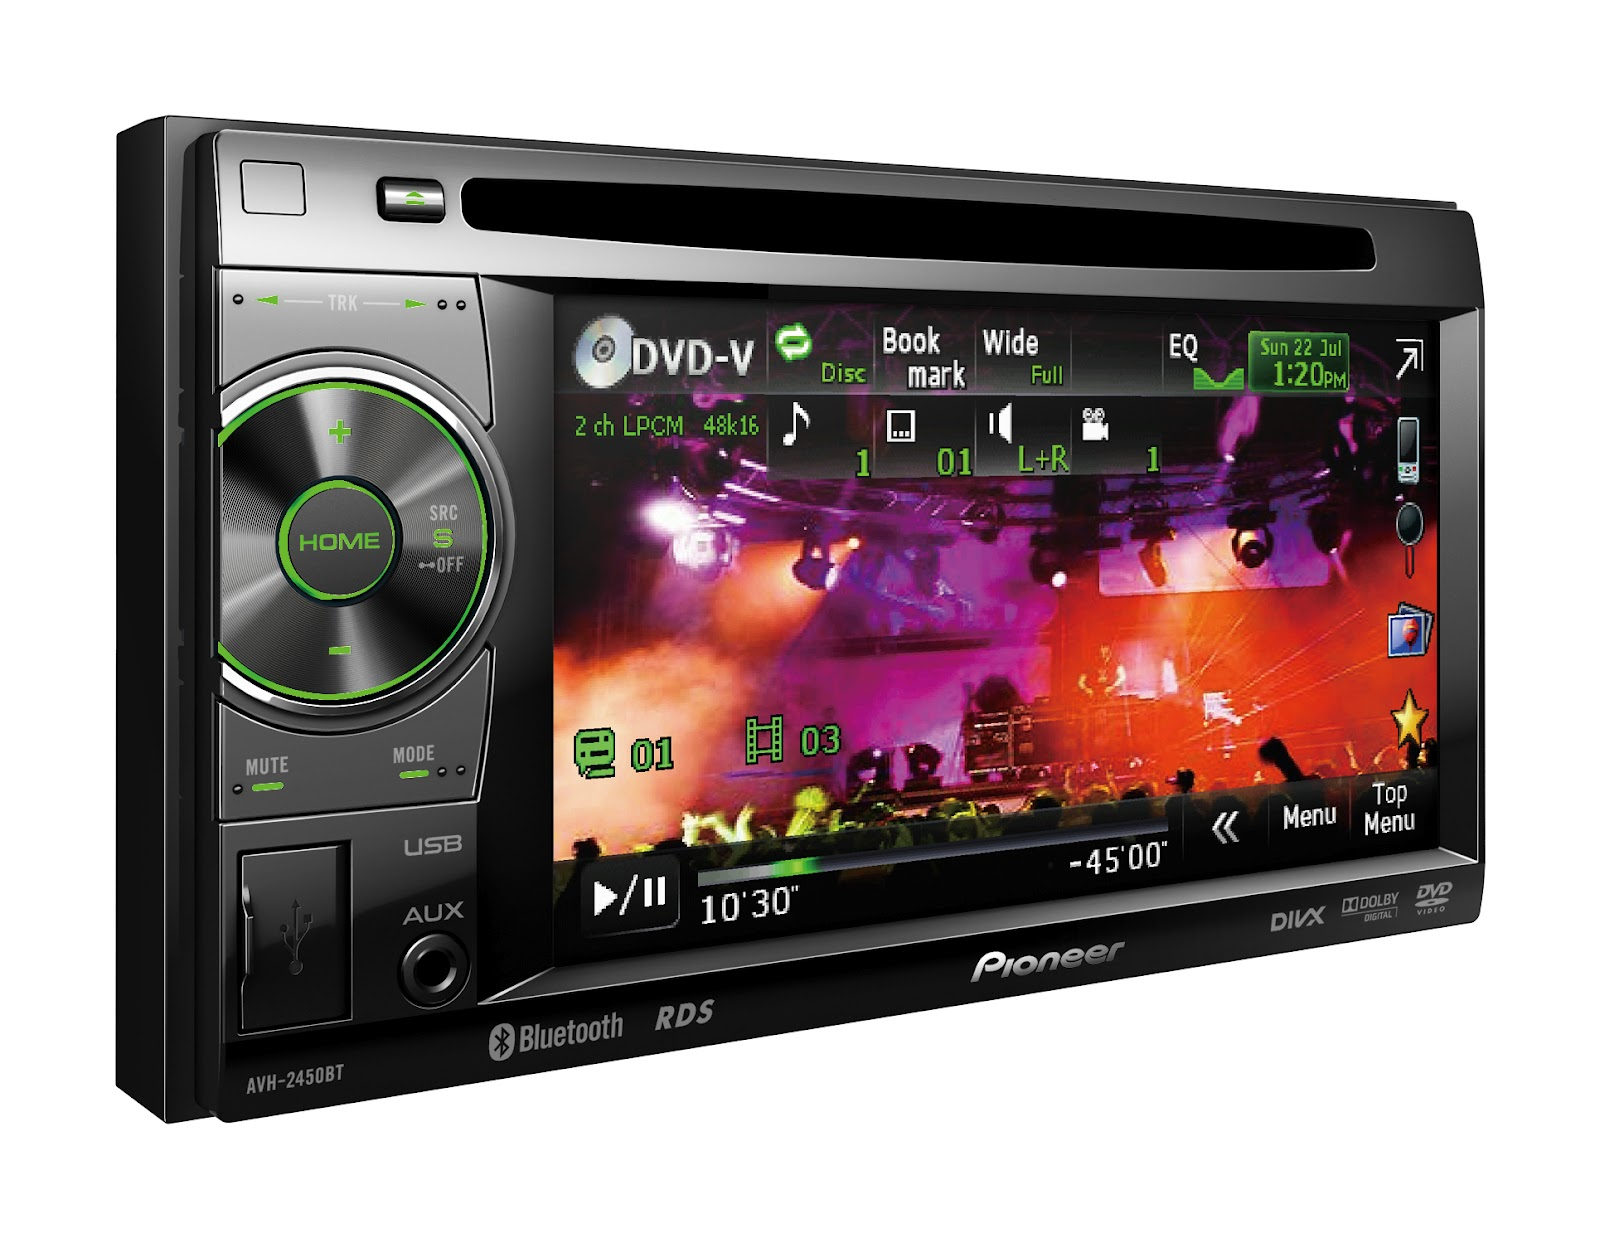 Download the latest firmware for pioneer xdj-r1 dj system.